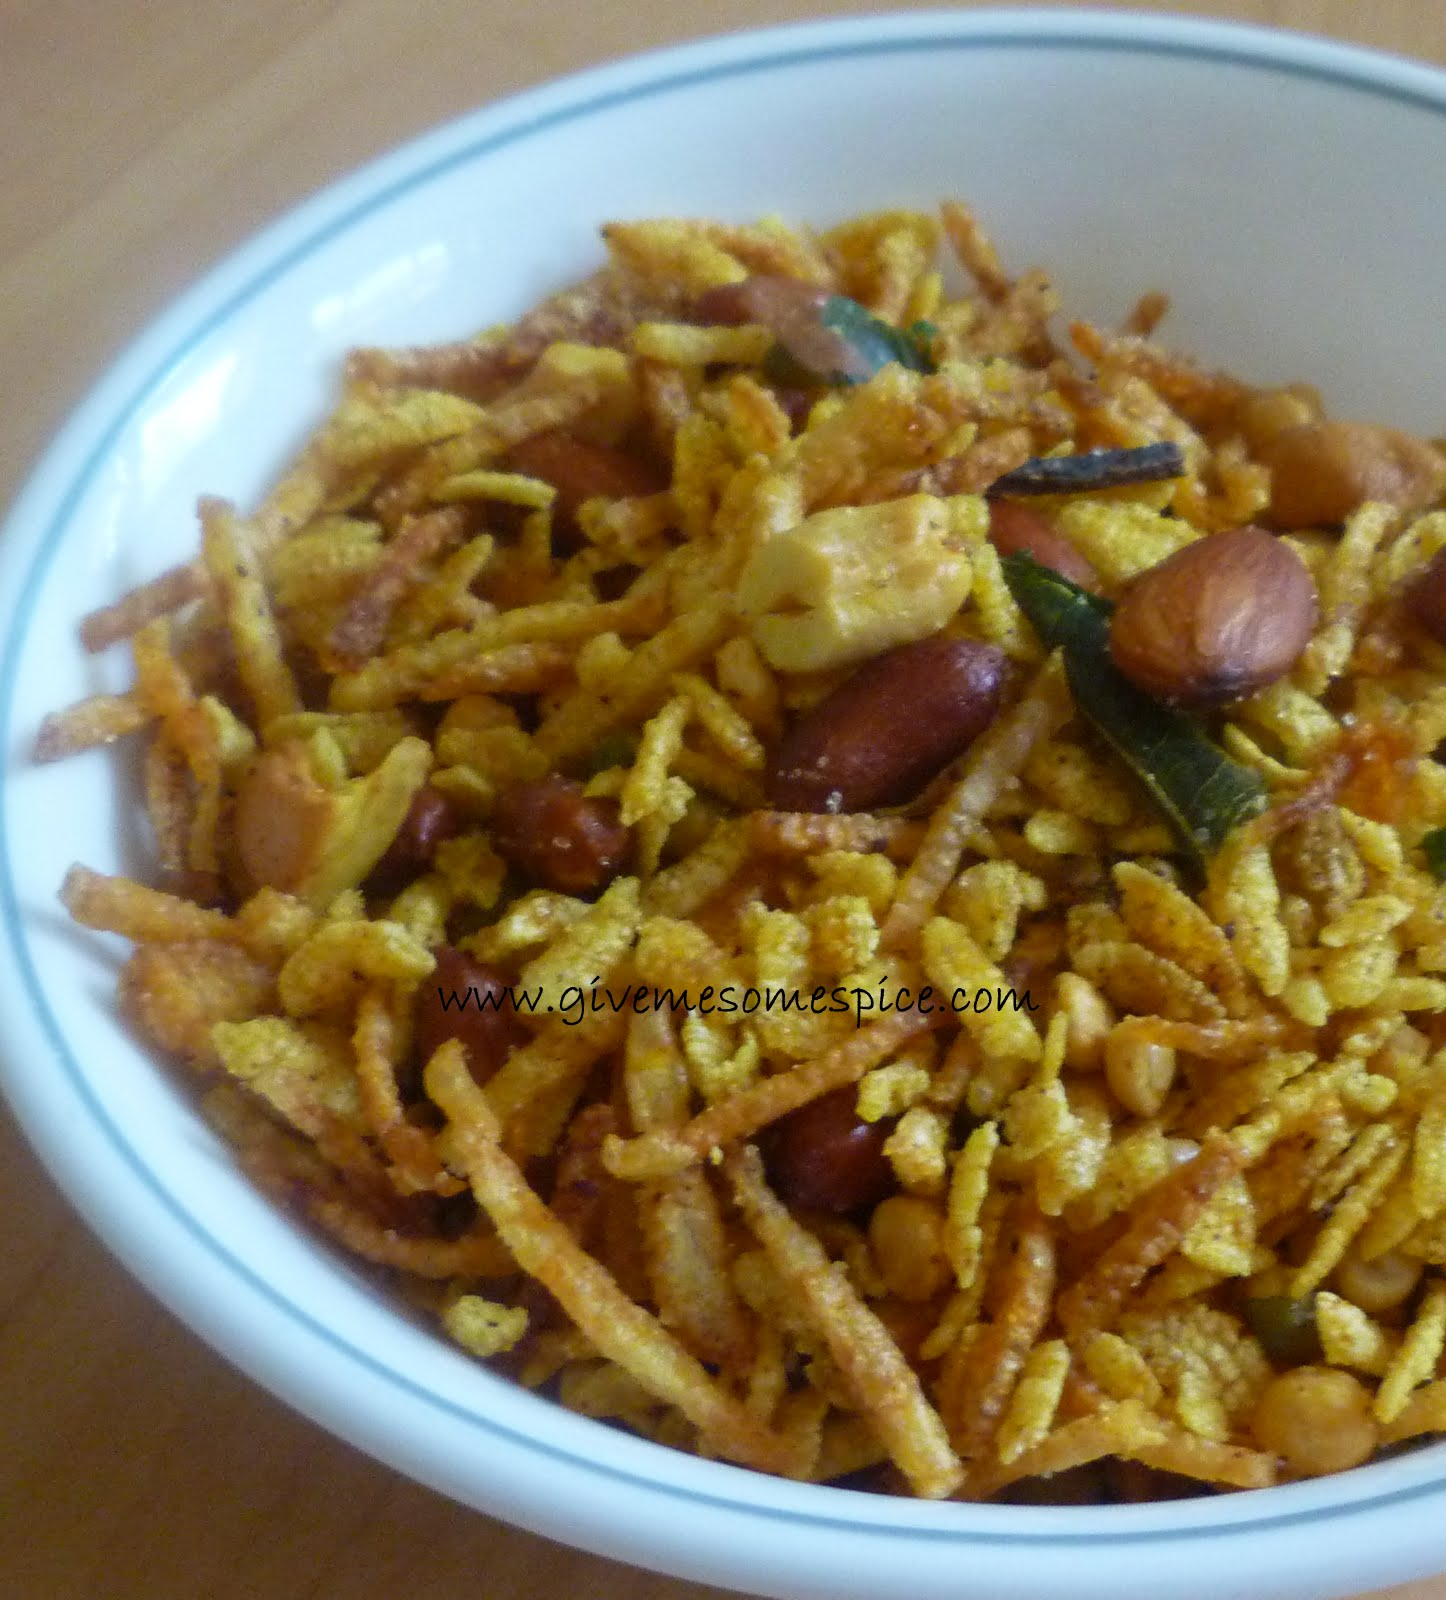 Authentic vegetarian recipes indian traditional food step by kenya chevdochewdo gujarat snack mix with rice flakes potato crisps lentils and nuts forumfinder Images